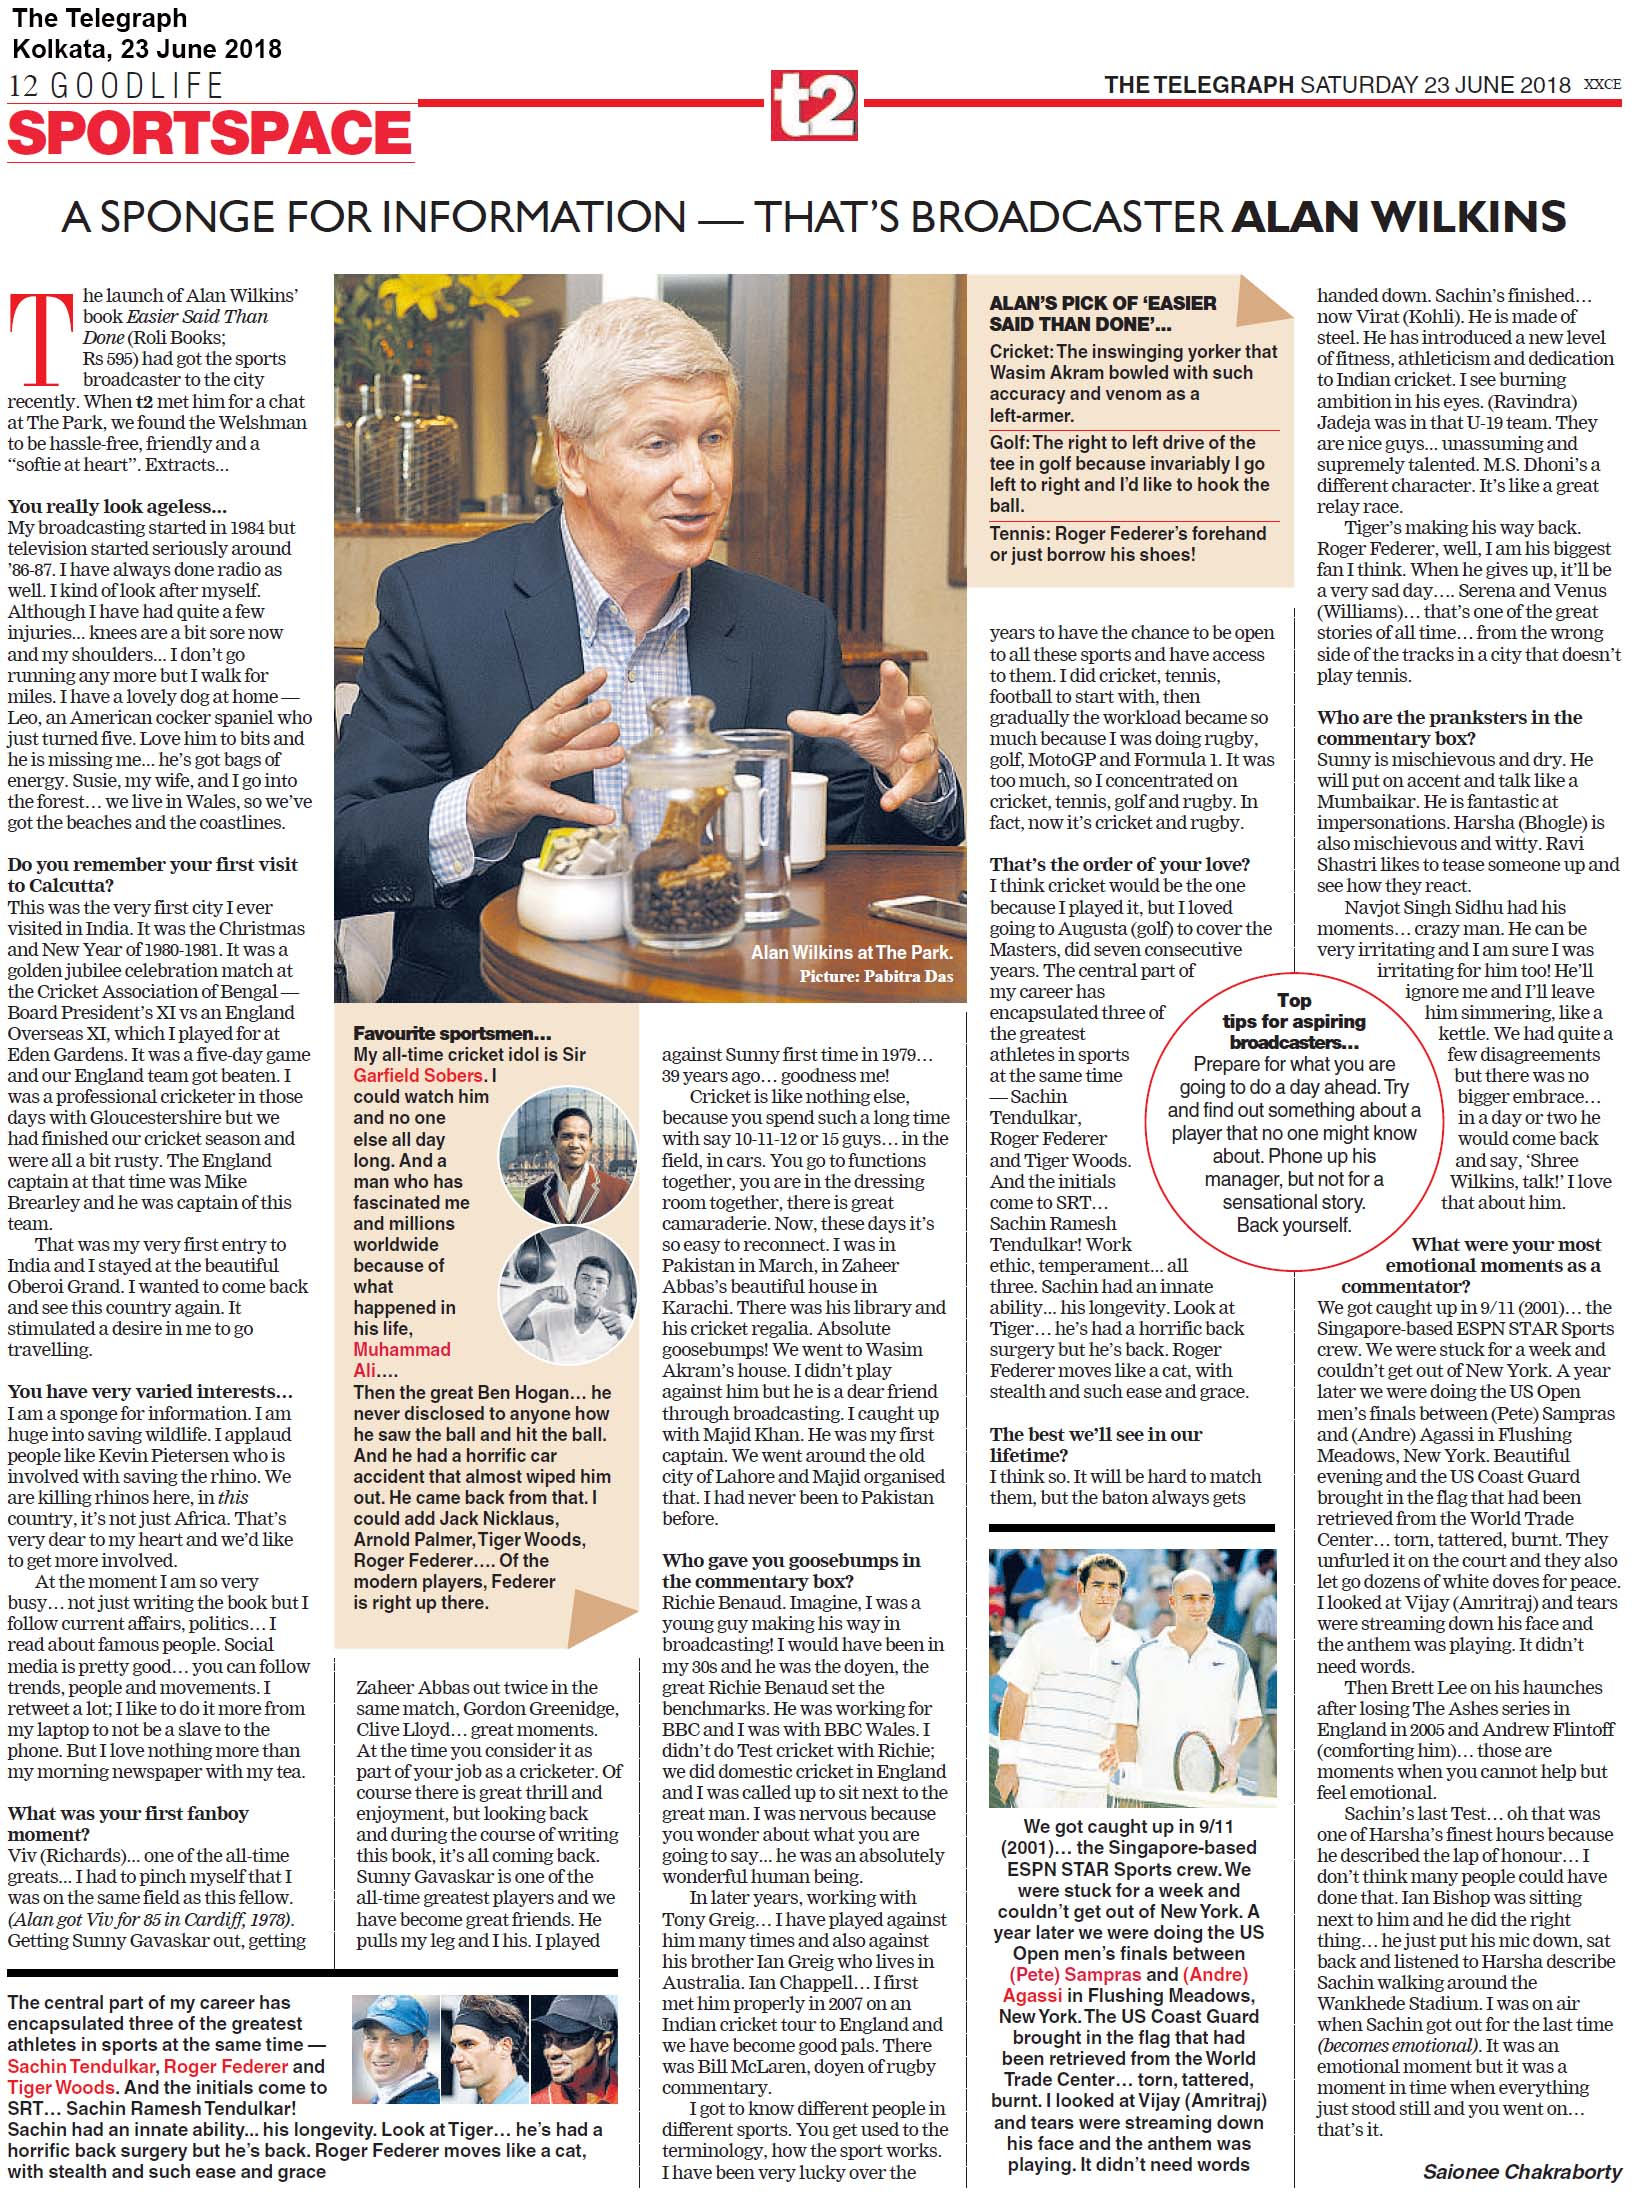 EASIER SAID THAN DONE<br><span> The Telegraph, Kolkata </span>